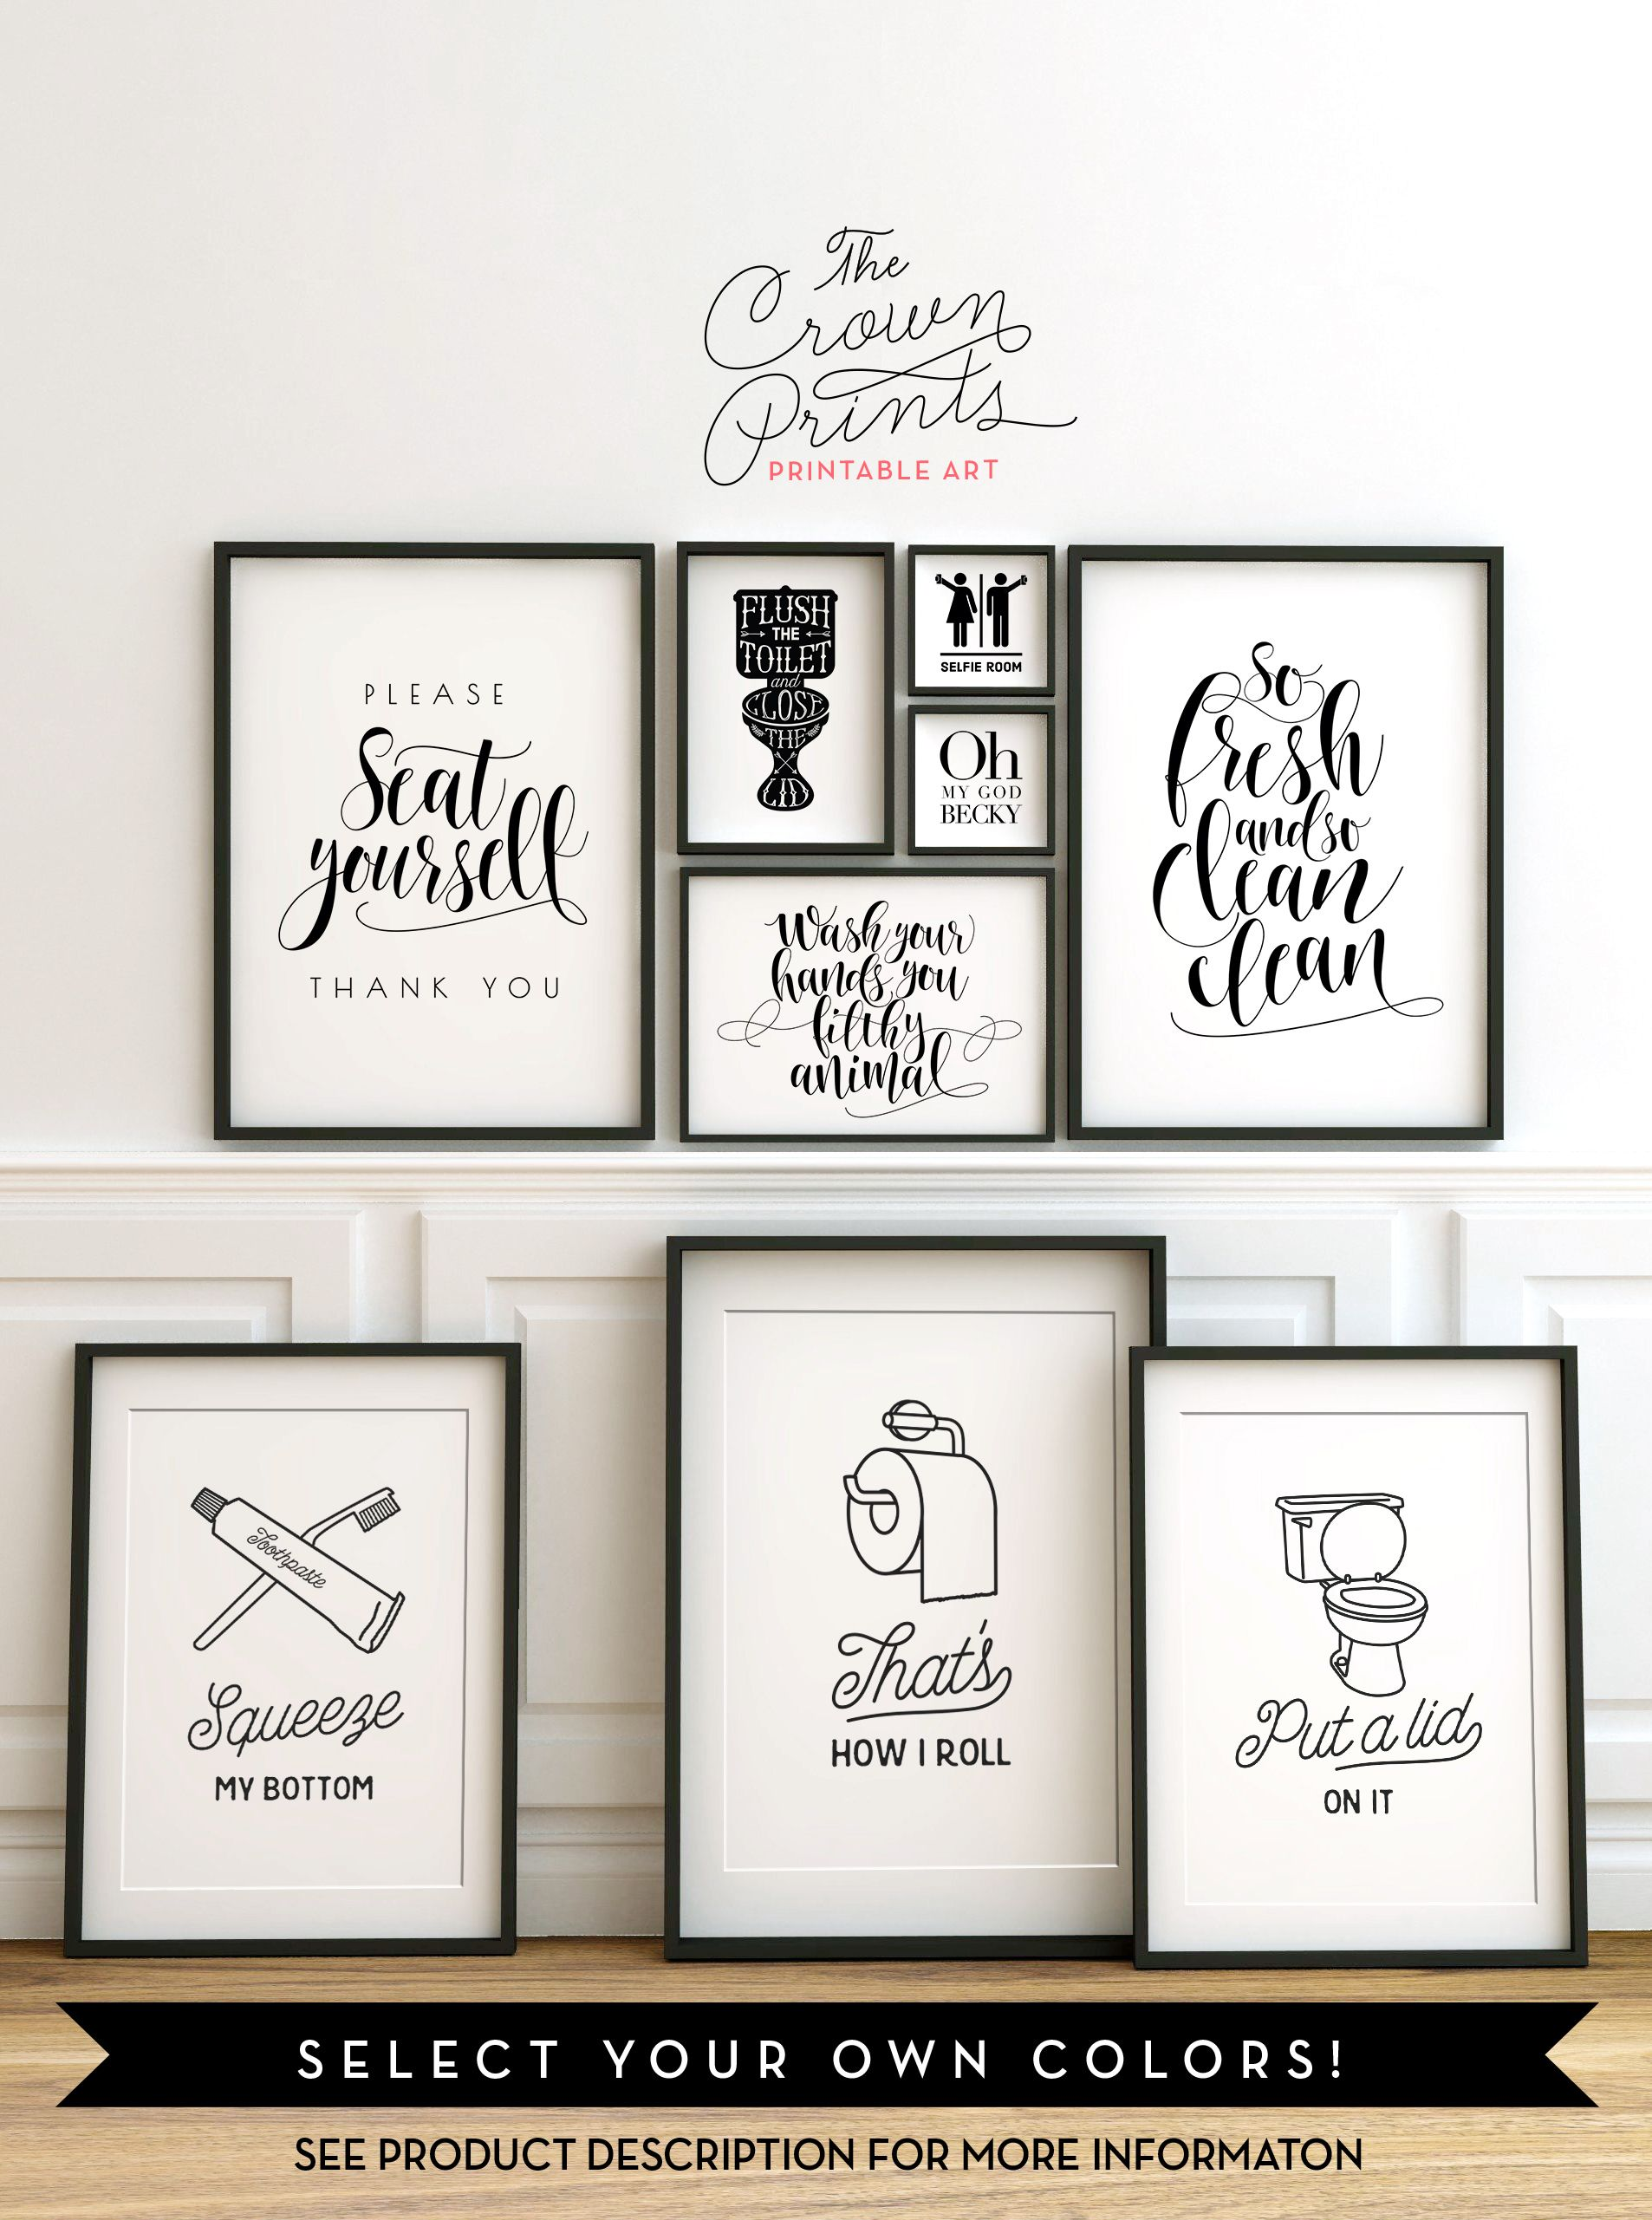 Printable bathroom wall art from the crown prints on etsy for Bathroom design quotes